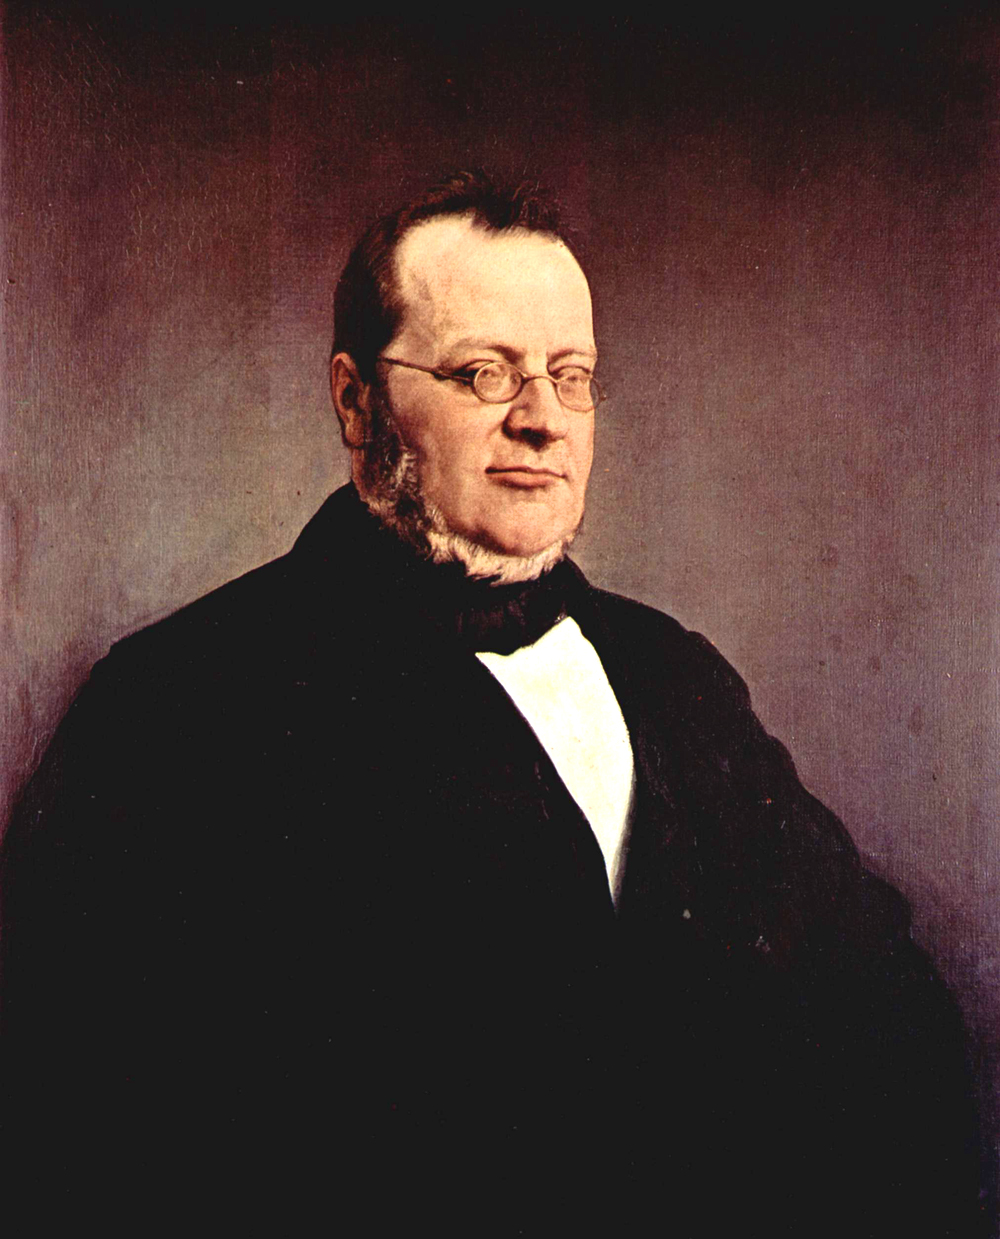 Francesco Hayez (1791-1882)  Portrait of Camillo Benso di Cavour   Oil on canvas, 1864  79 × 64 cm (31.1 × 25.1 in)  Pinacoteca di Brera, Milan, Italy